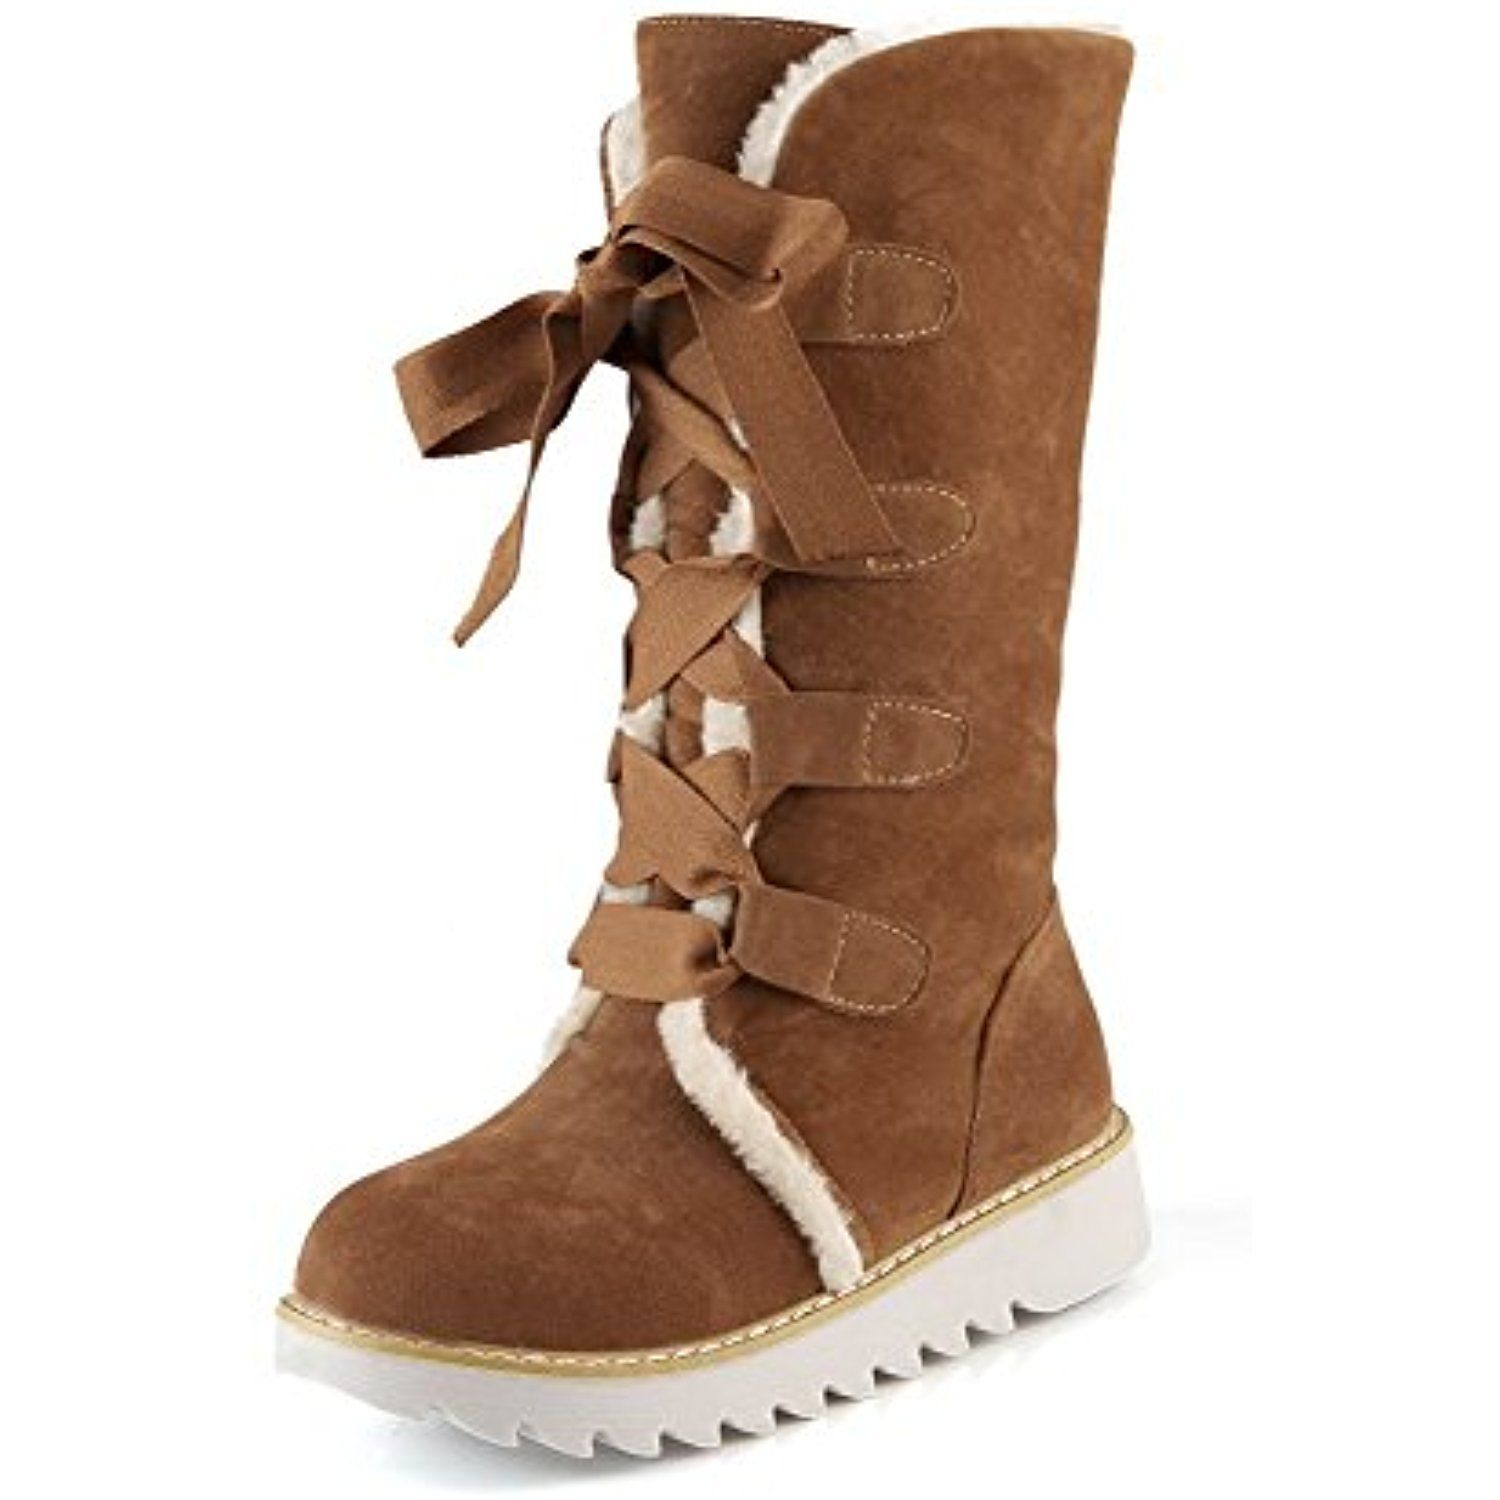 Women's Frosted Lace-Up Round Closed Toe Low Heels Low Top Boots